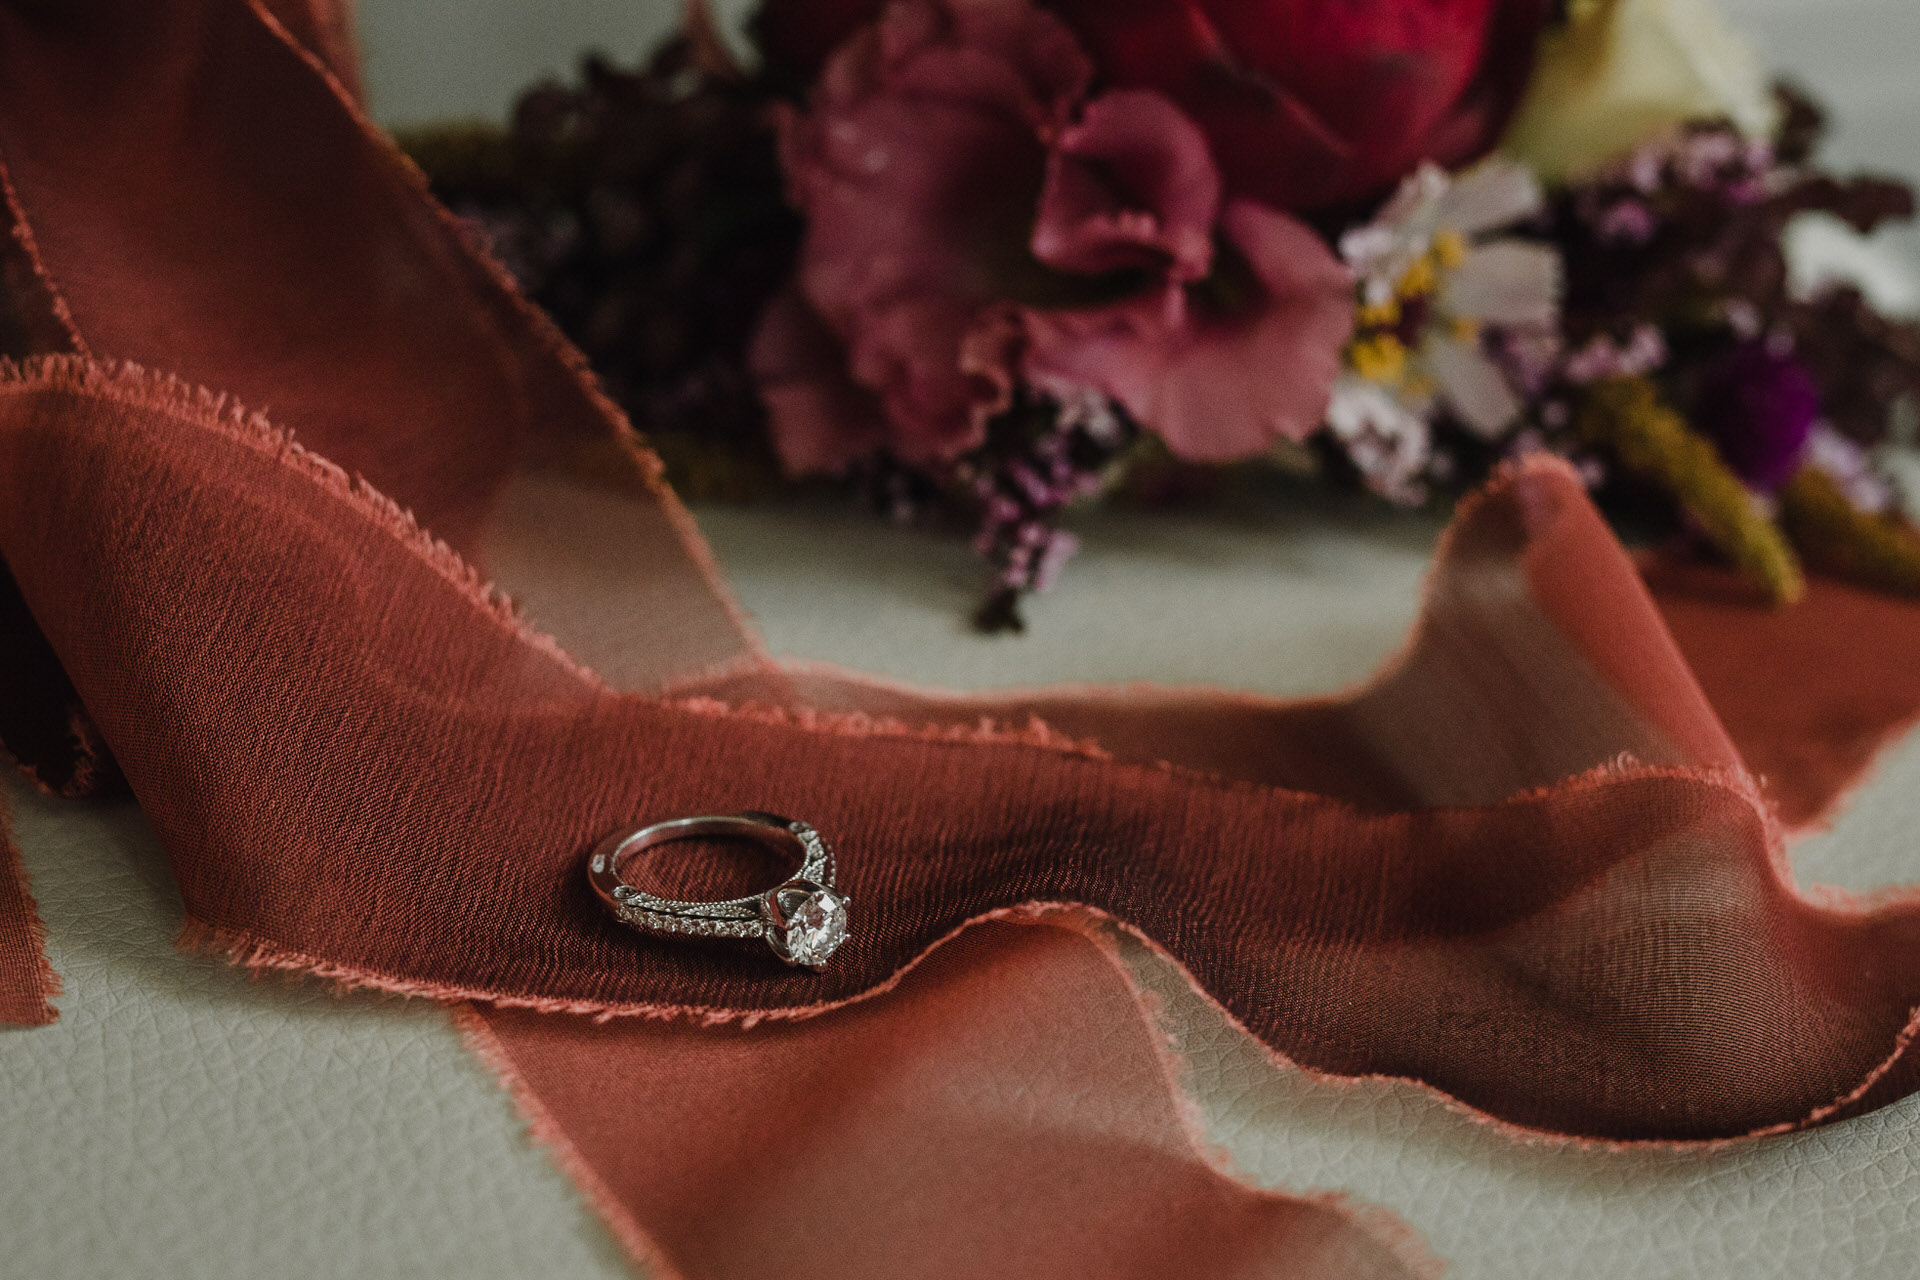 Berkeley Church Wedding - ring and bouquet